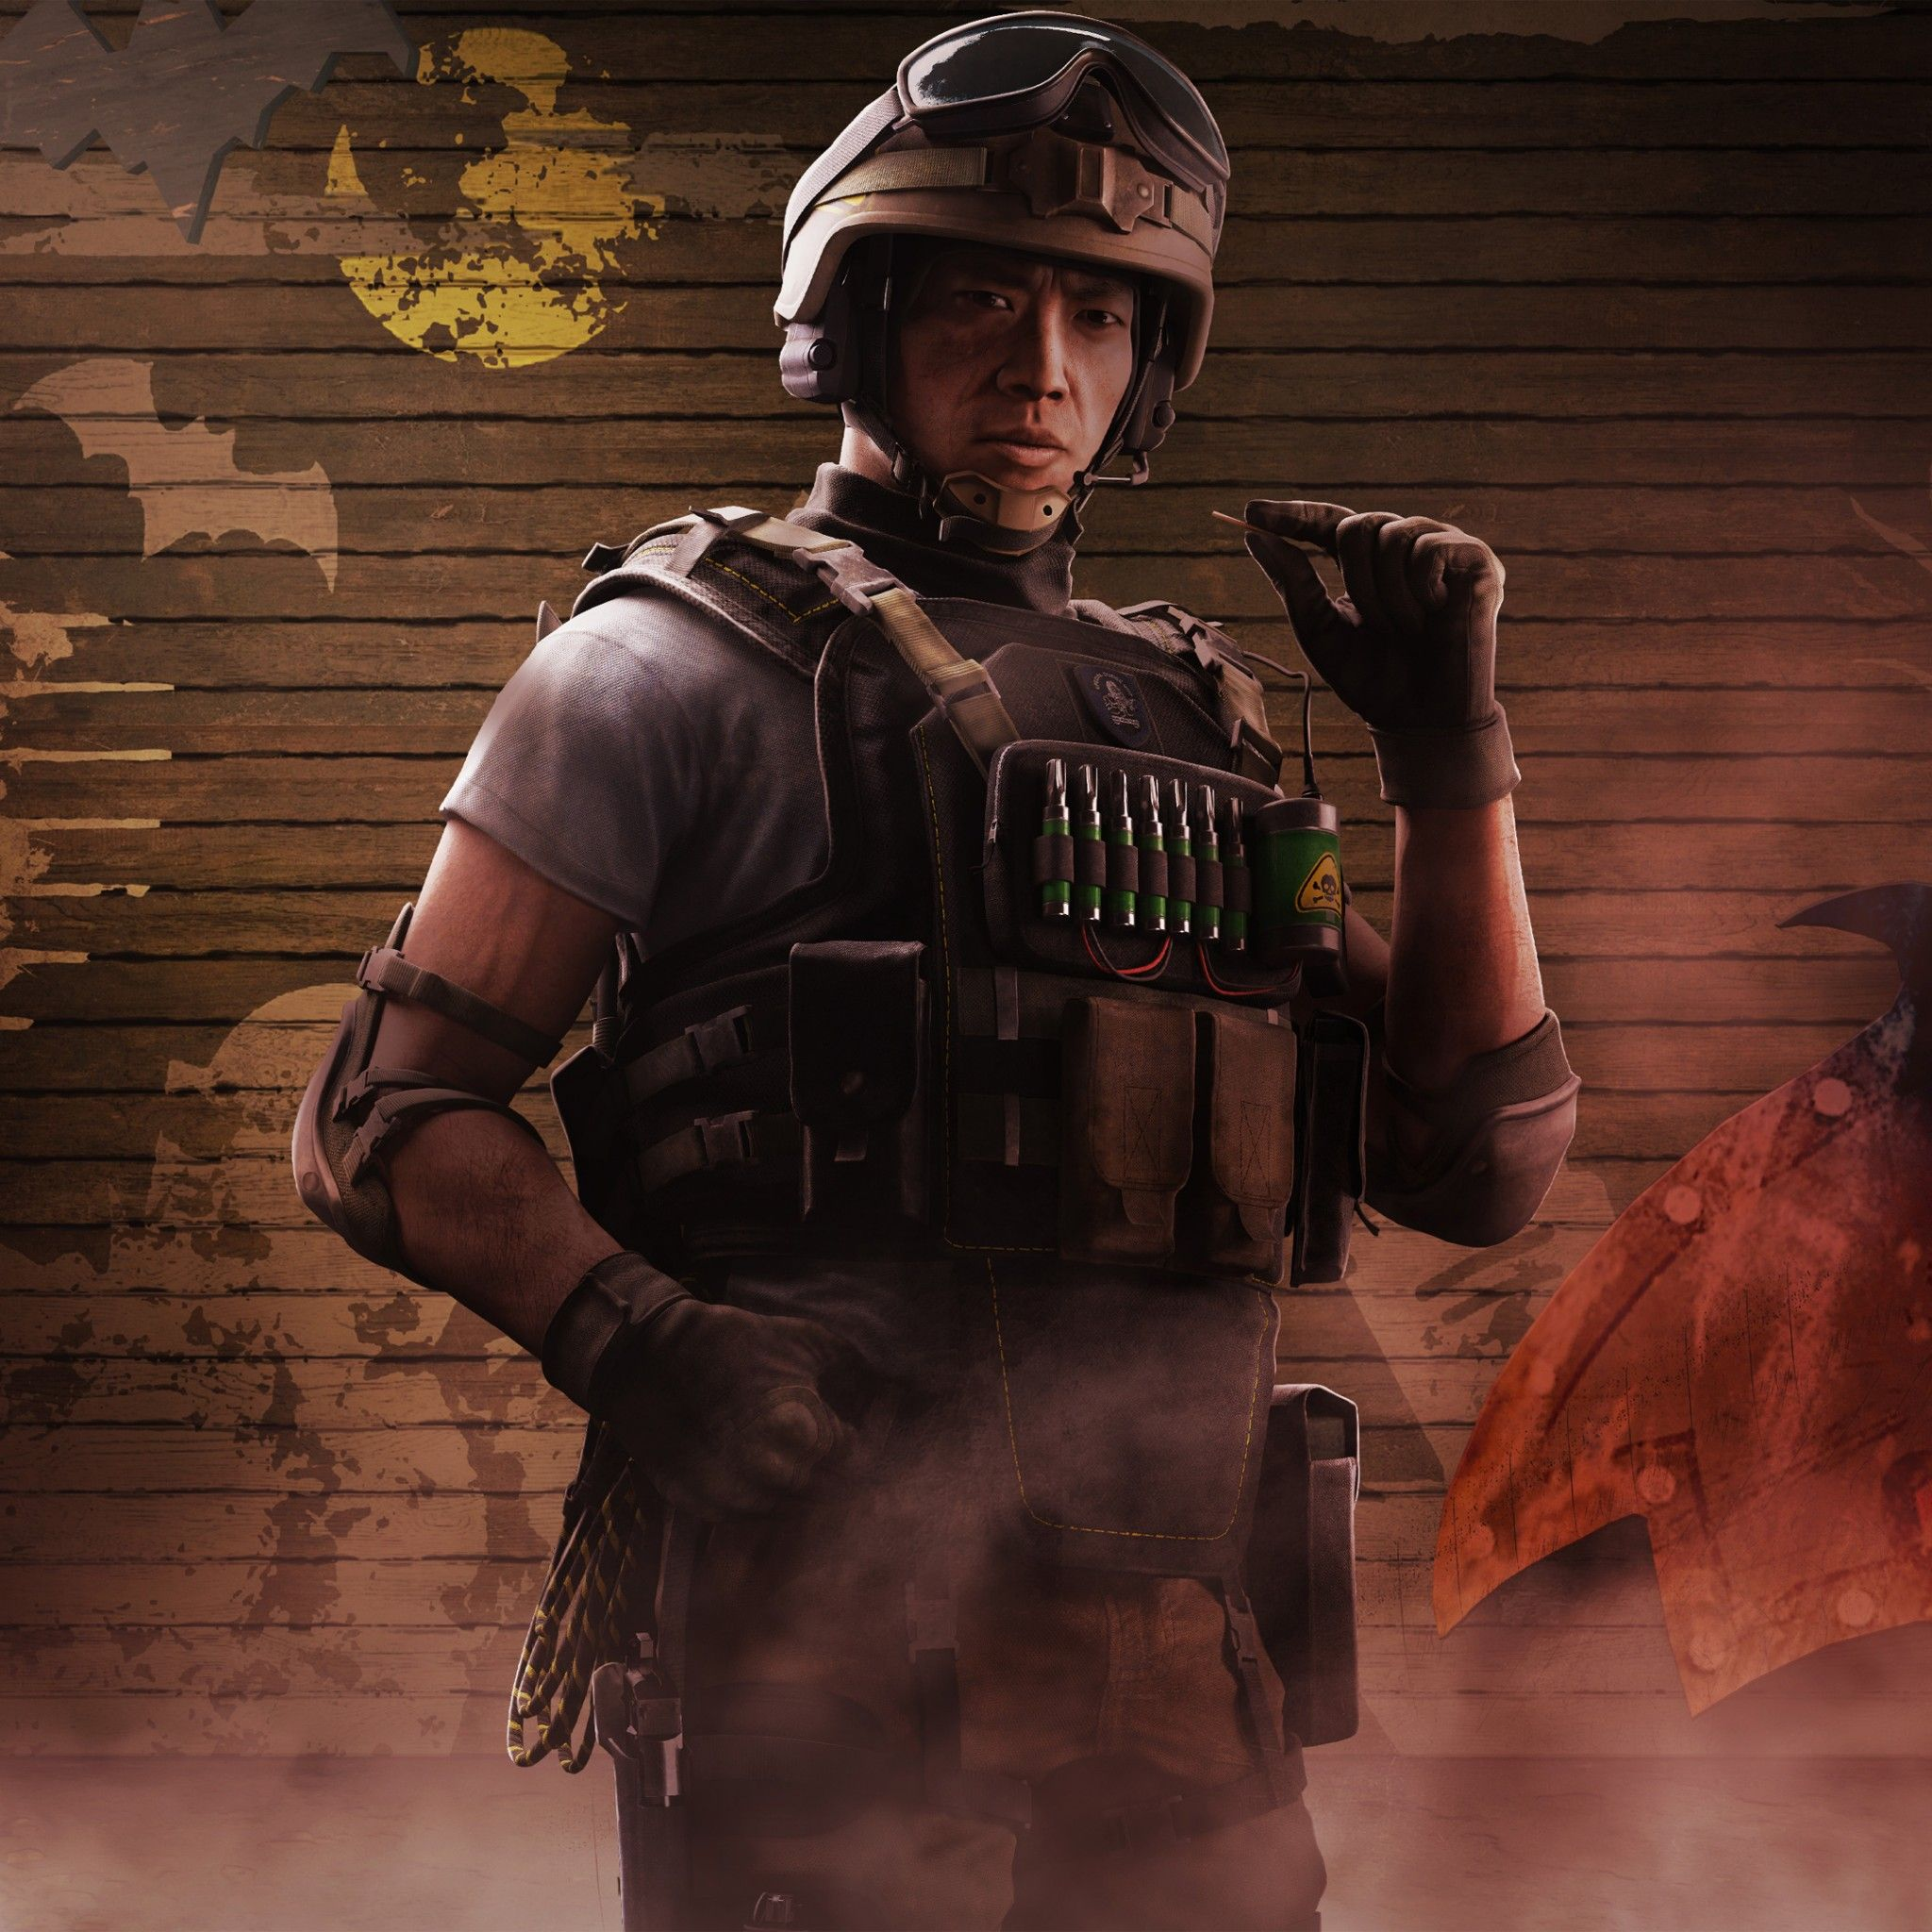 Wallpaper Lesion Operator Tom Clancy S Rainbow Six Siege With